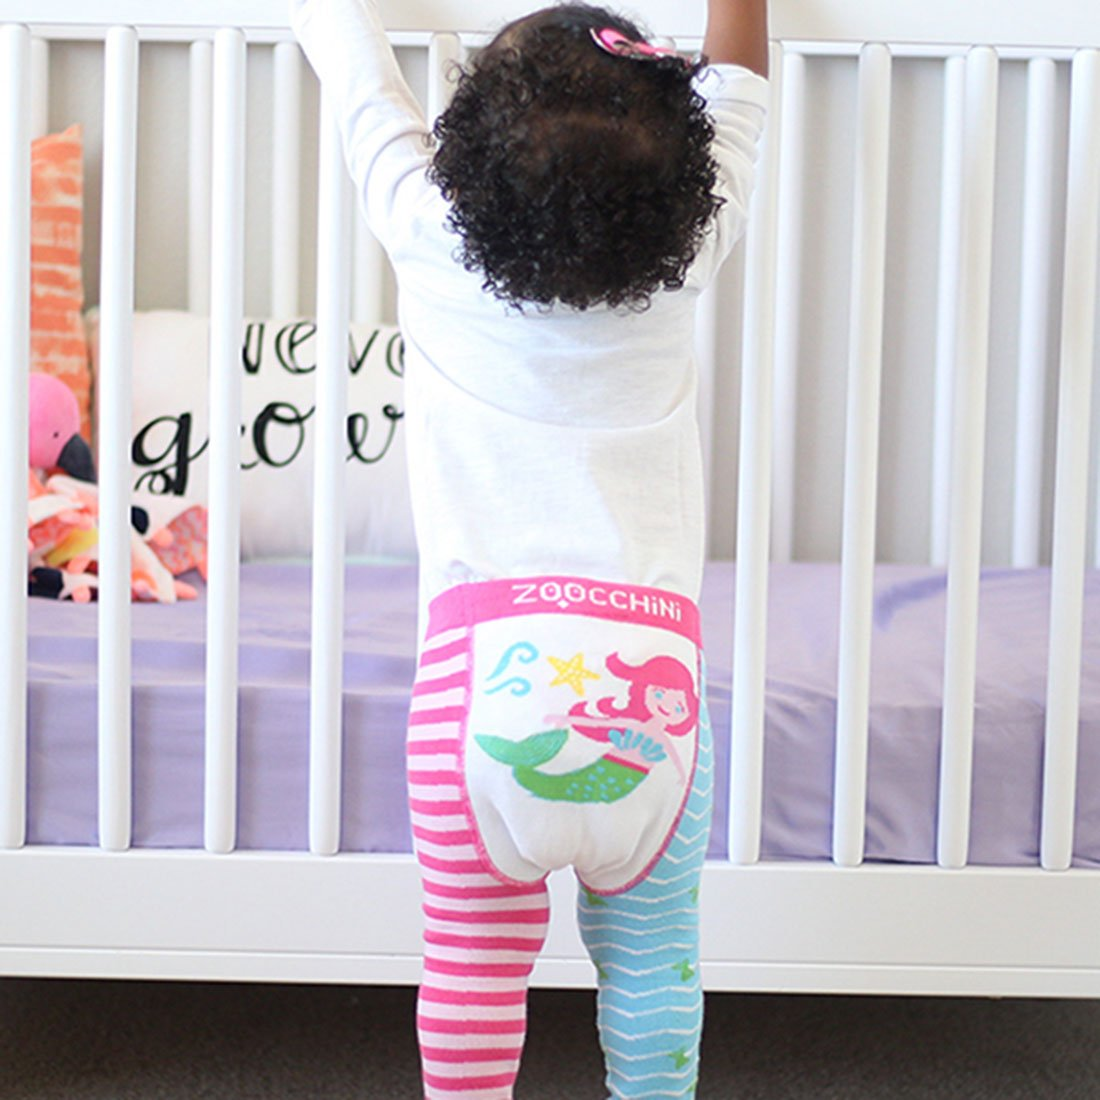 ZOOCCHINI grip+easy™ Comfort Crawler Legging & Socks Set - Marietta the Mermaid-1